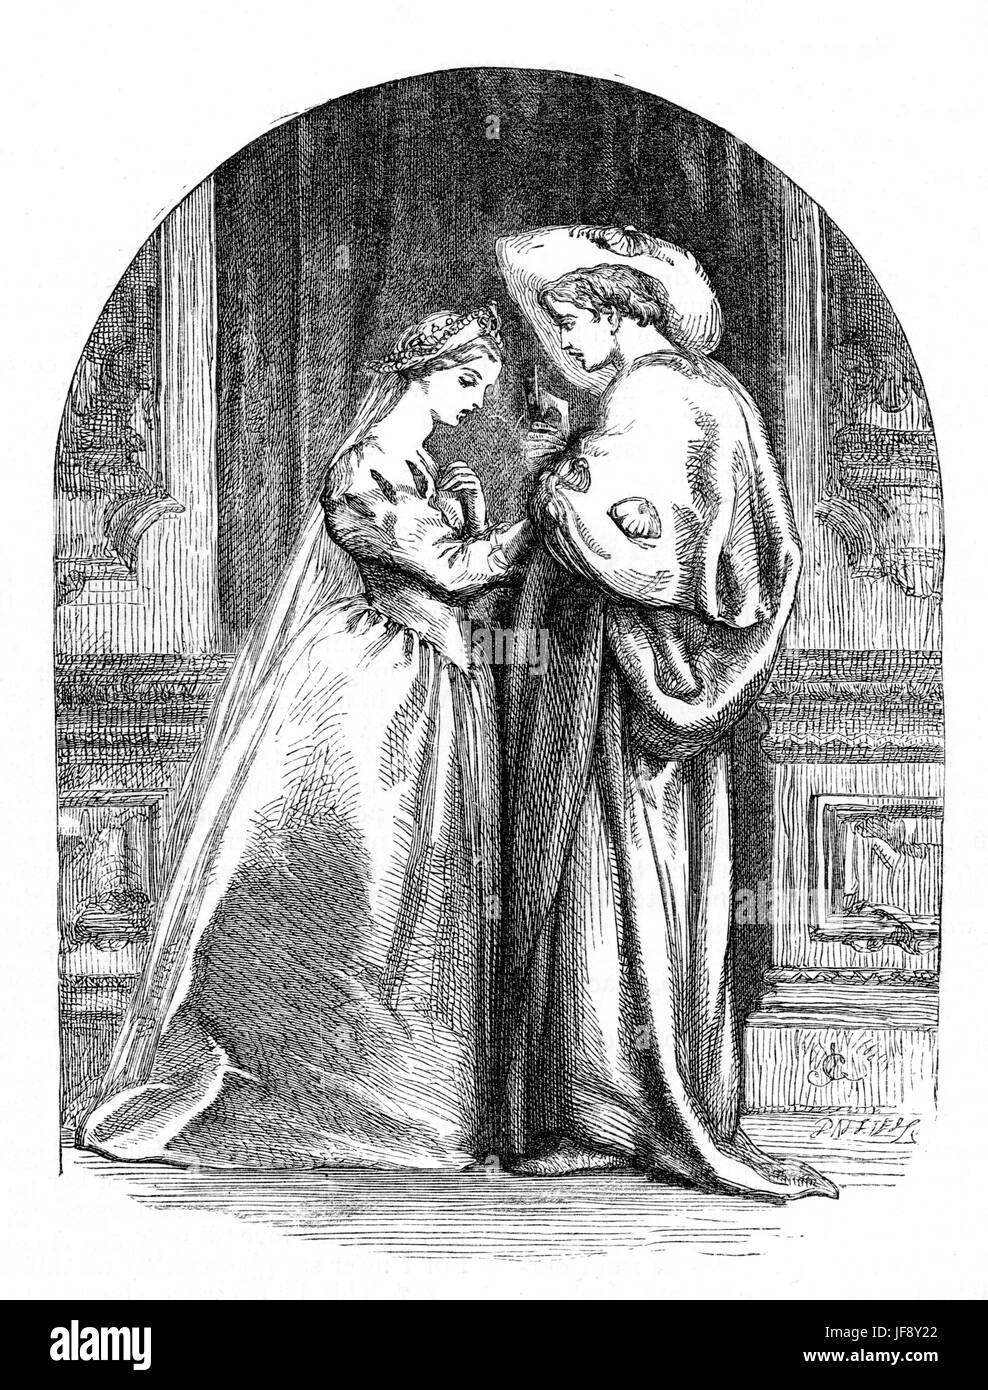 Romeo and Juliet, play by William Shakespeare (26 April 1564 – 23 April 1616). Illustration by Sir John Gilbert - Stock Image